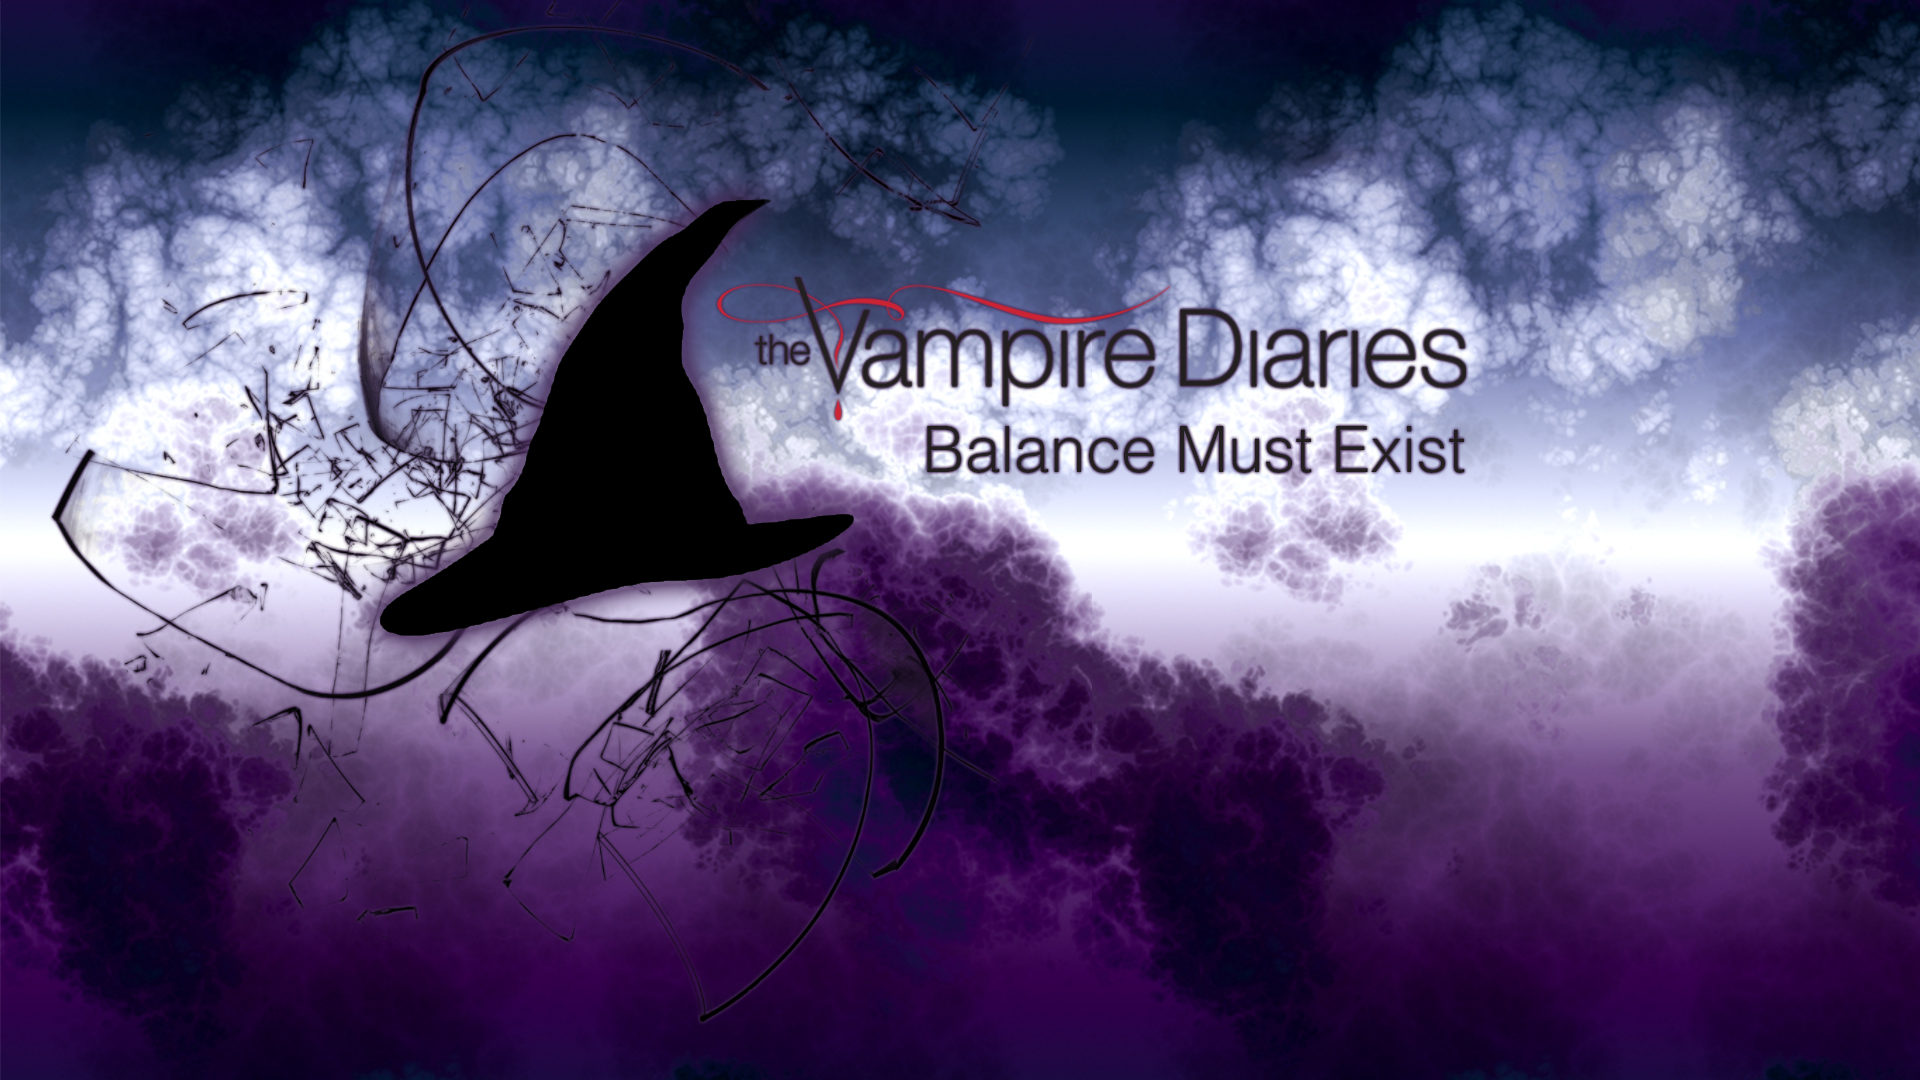 The Vampire Diaries Wallpaper Series The Vampire Diaries - Vampire Diaries Logo Backgrounds , HD Wallpaper & Backgrounds